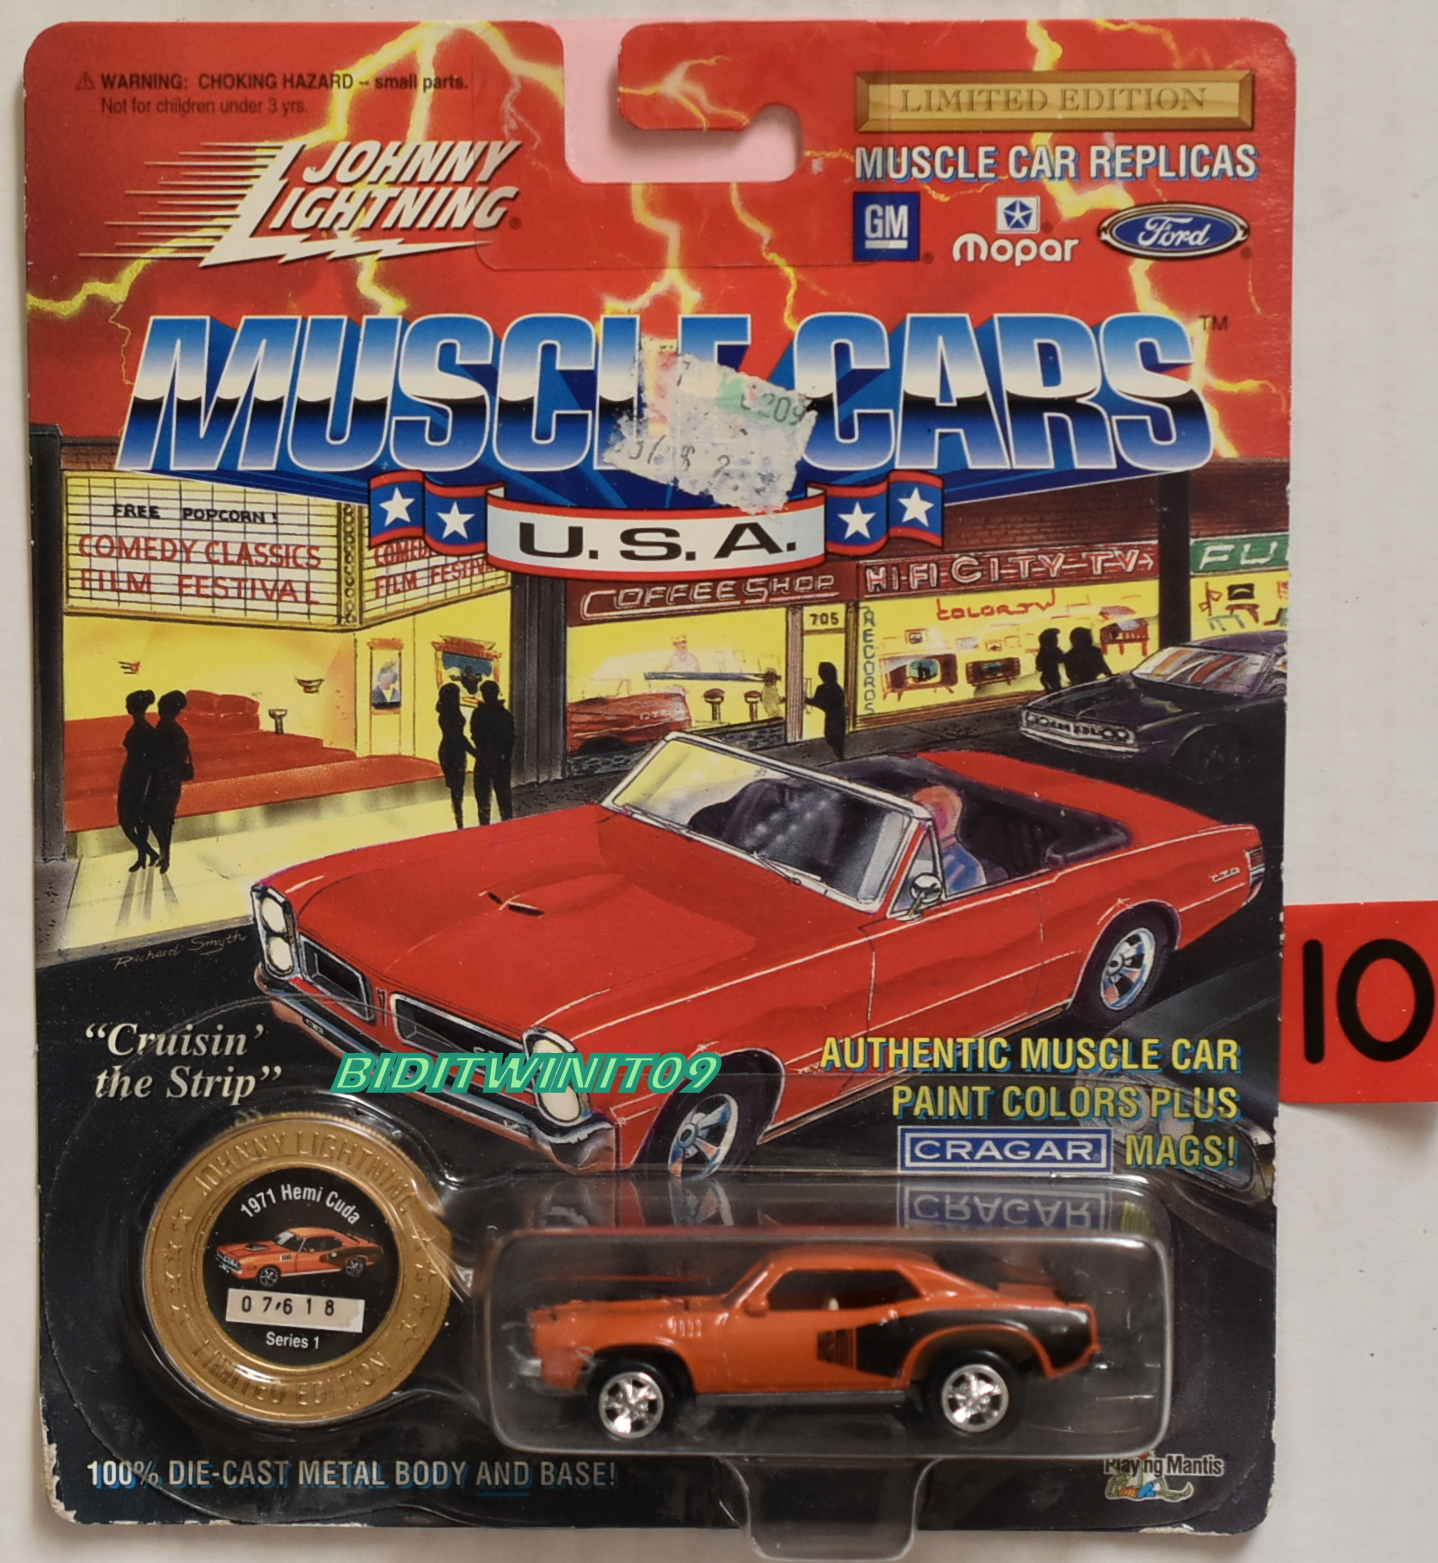 1994 JOHNNY LIGHTNING MUSCLE CARS 1971 HEMI CUDA SERIES 1 ORANGE